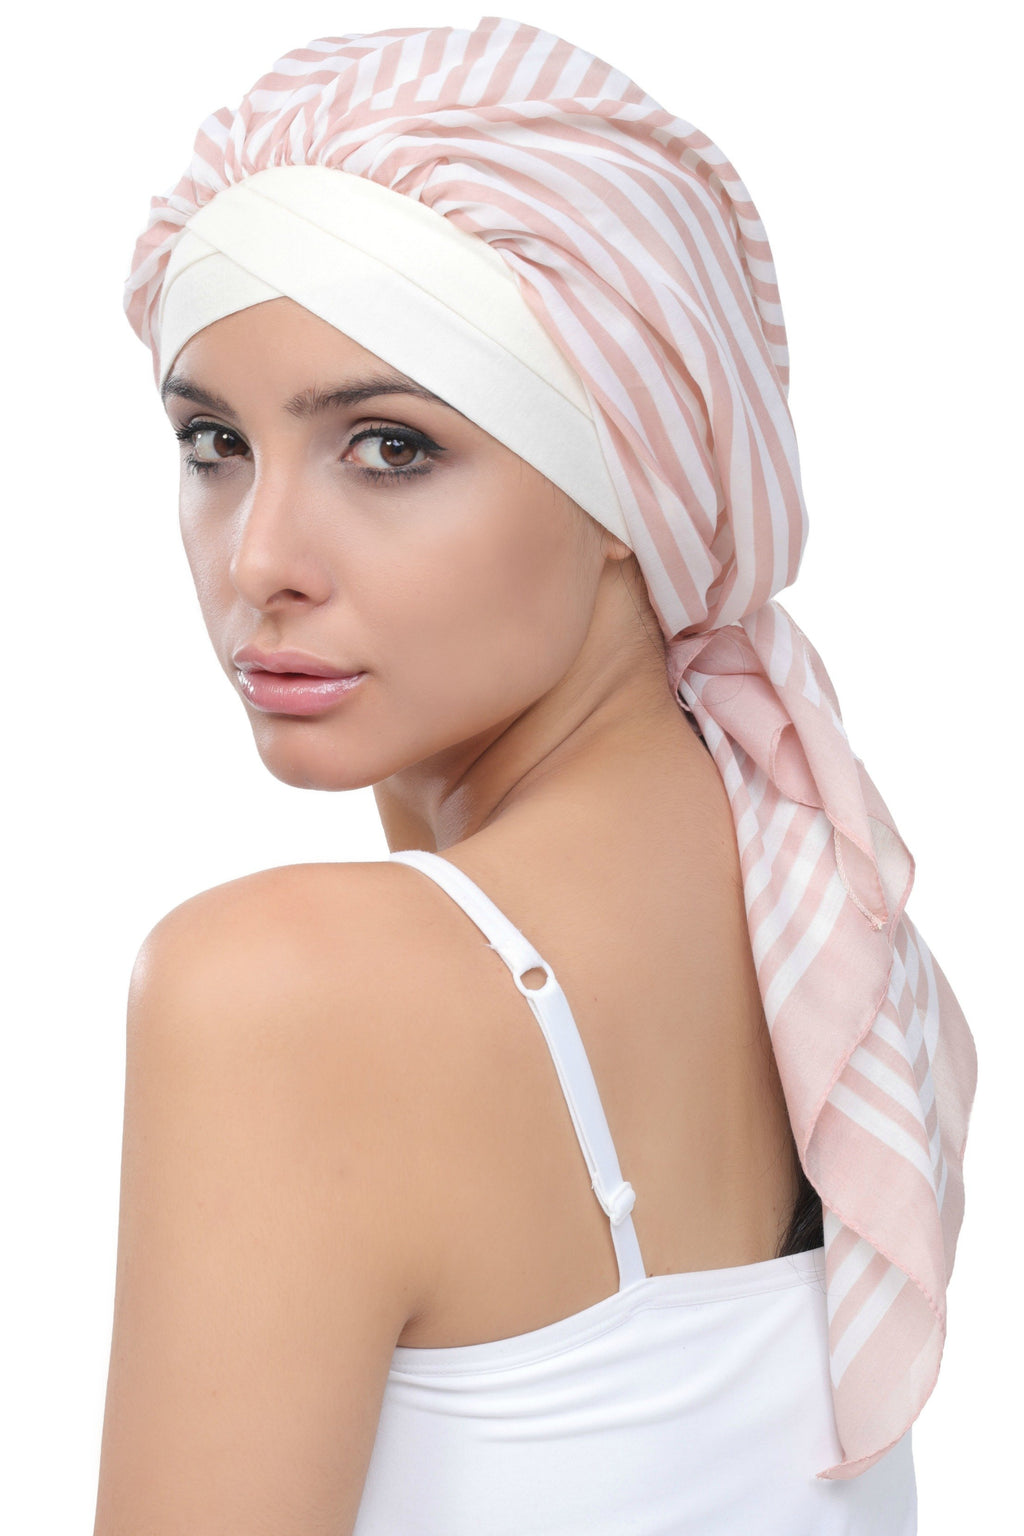 Deresina W cap with attached chemo headscarf style30 cream somon